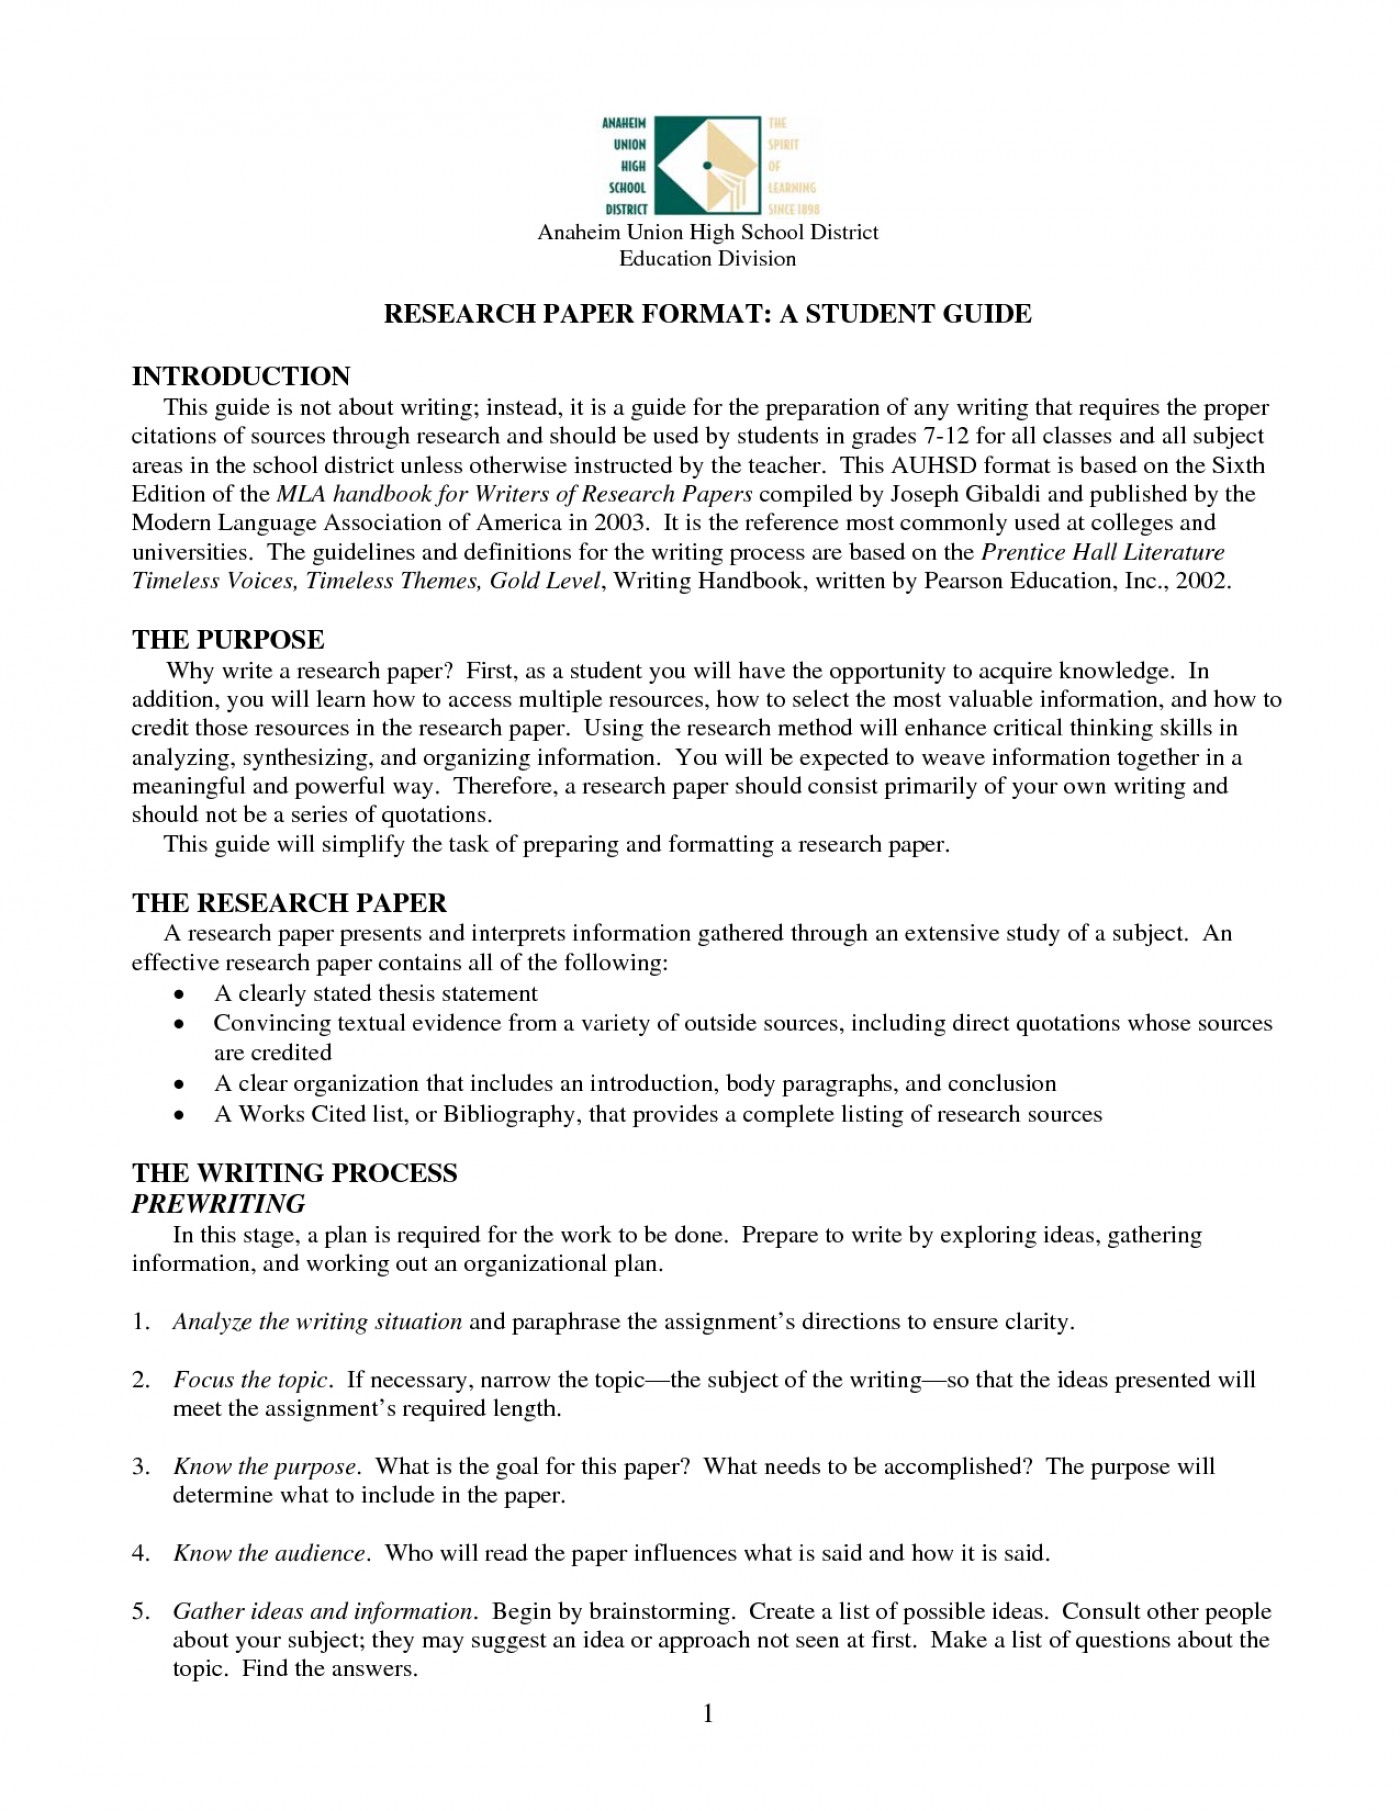 018 Best Research Paper Topics Ideas Of Outline Nice For Papers High School Stupendous Top 10 In Computer Science Sports Technology 1400